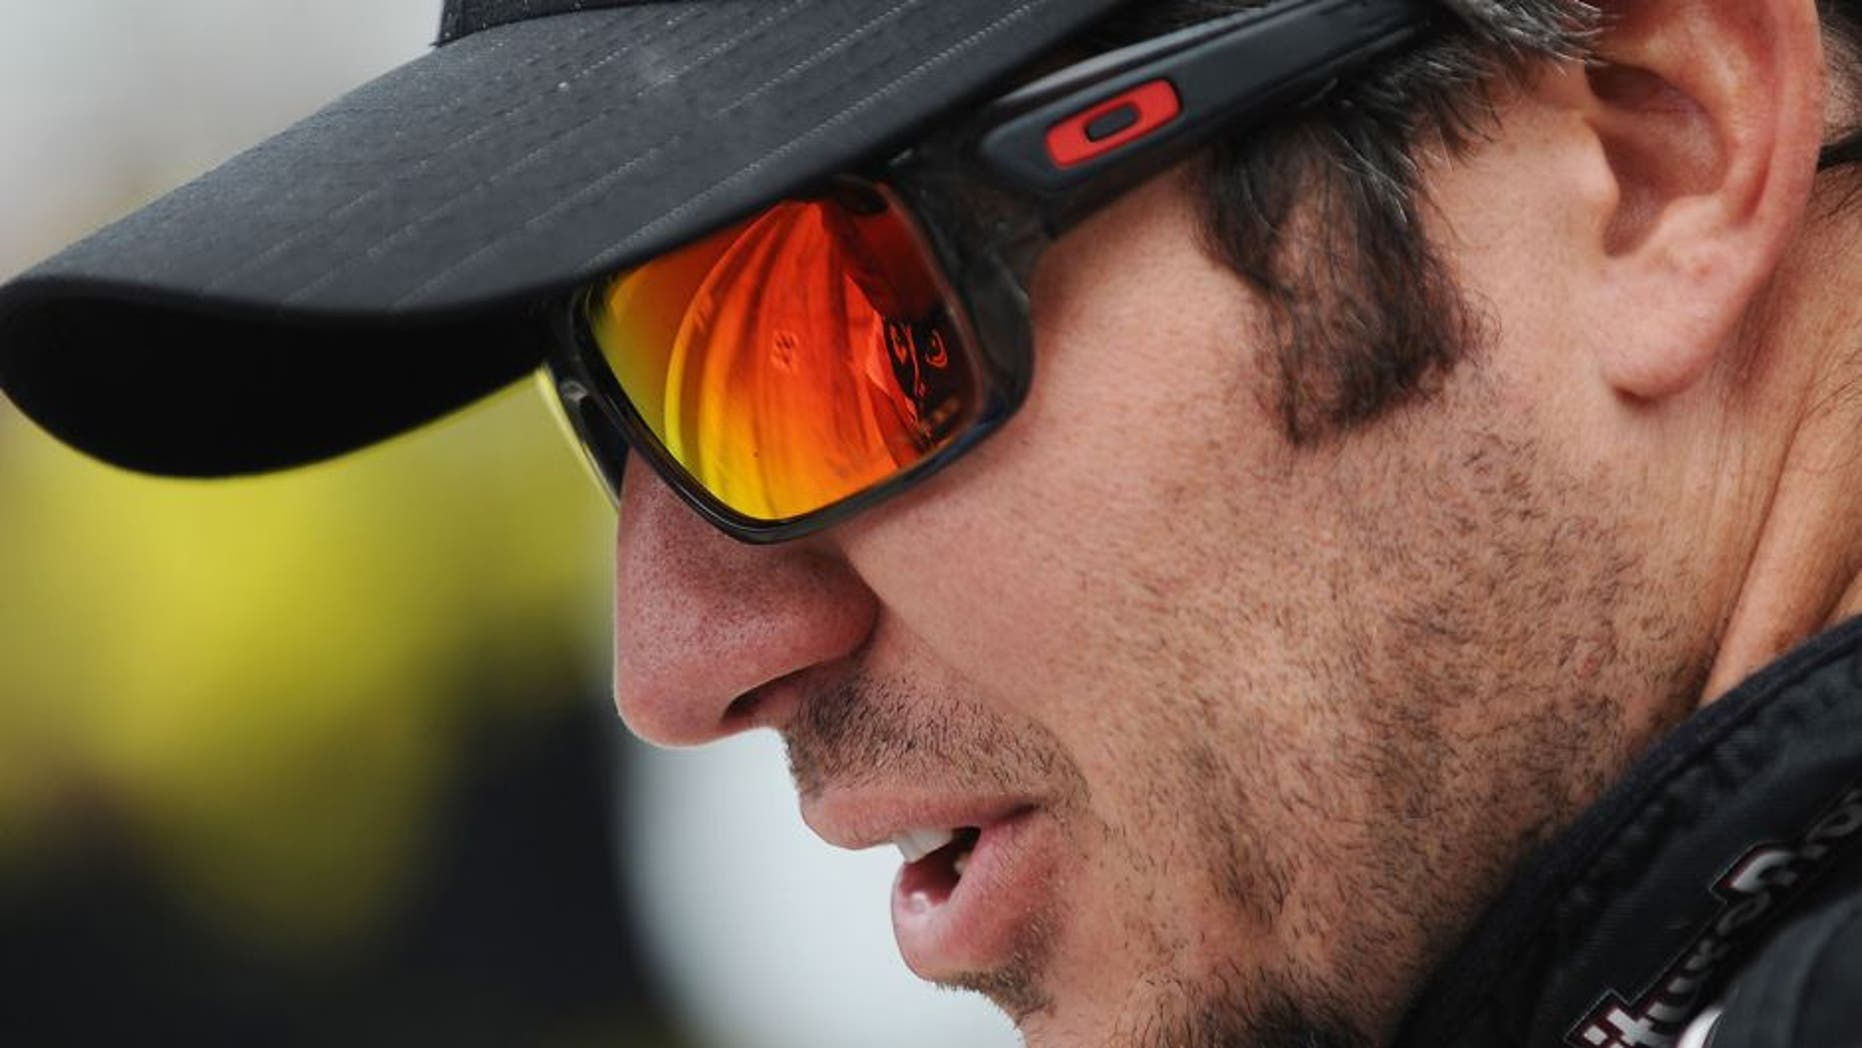 INDIANAPOLIS, IN - JULY 25: Martin Truex Jr., driver of the #78 Furniture Row/Visser Precision Chevrolet, sits on the grid during qualifying for the NASCAR Sprint Cup Series Crown Royal Presents the Jeff Kyle 400 at the Brickyard at Indianapolis Motor Speedway on July 25, 2015 in Indianapolis, Indiana. (Photo by Rainier Ehrhardt/NASCAR via Getty Images)